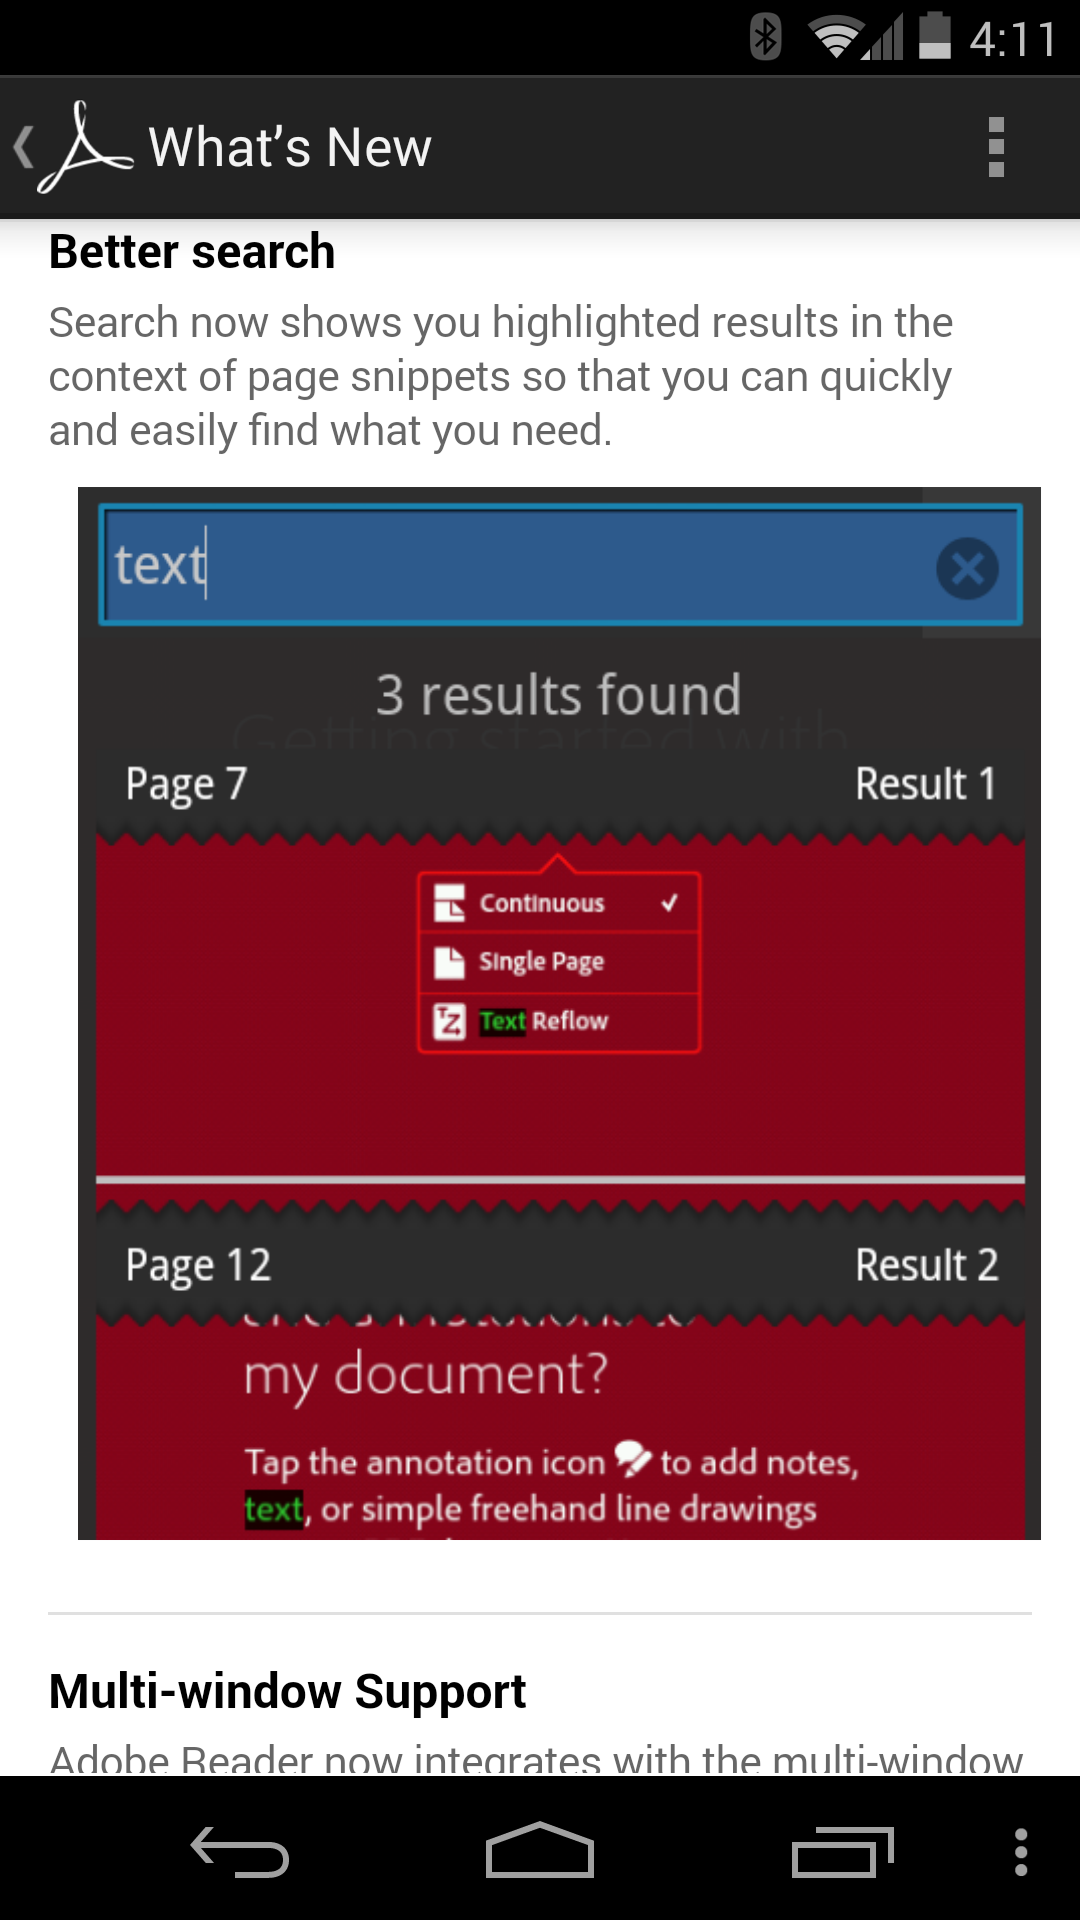 Adobe Reader For Android Updated To Version 11.1, Now Has New PDF ...